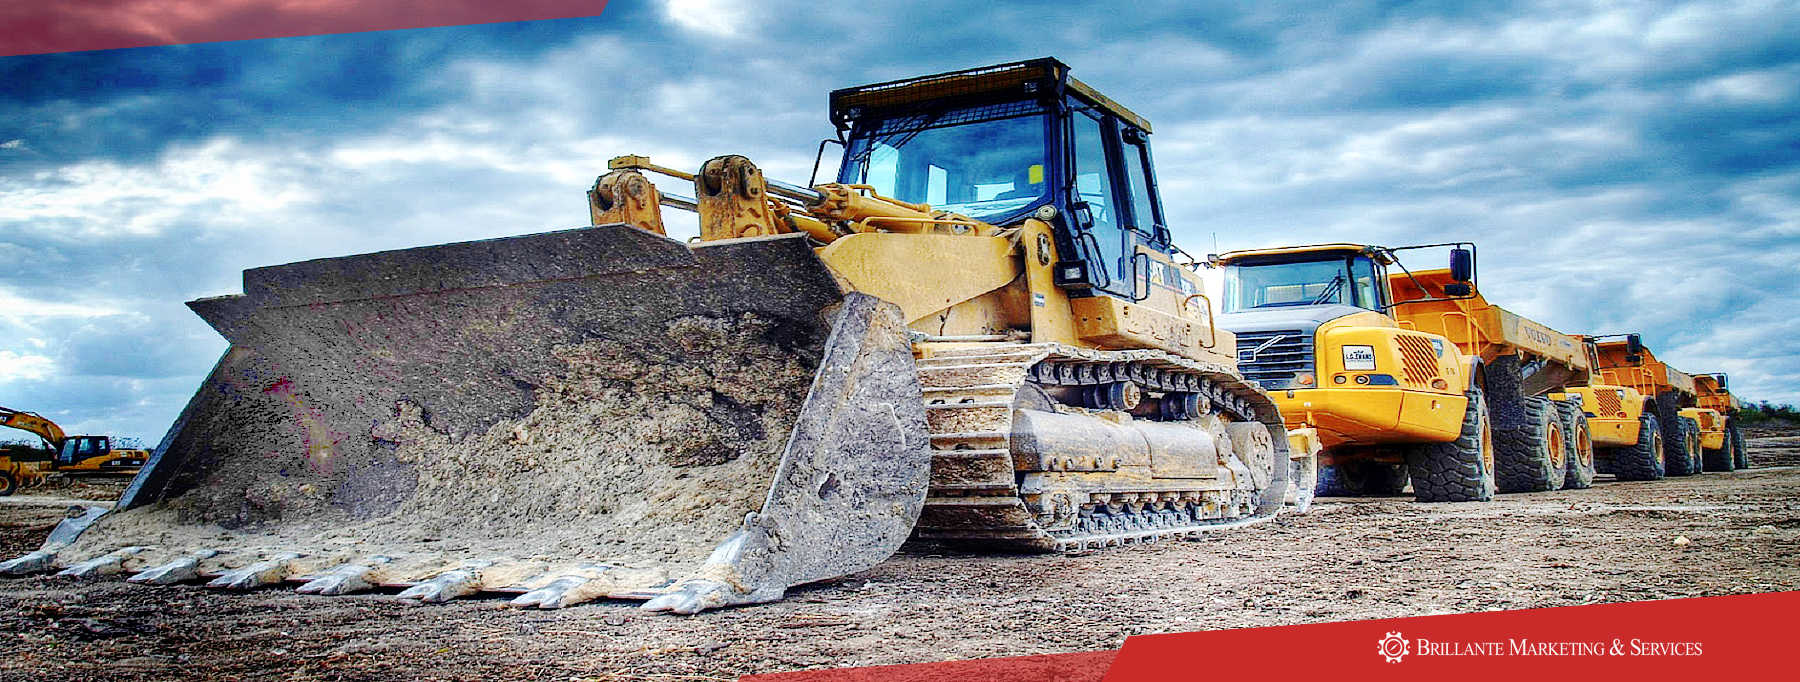 We carry good inventory stock for Caterpillar, Mitsubishi, and Komatsu